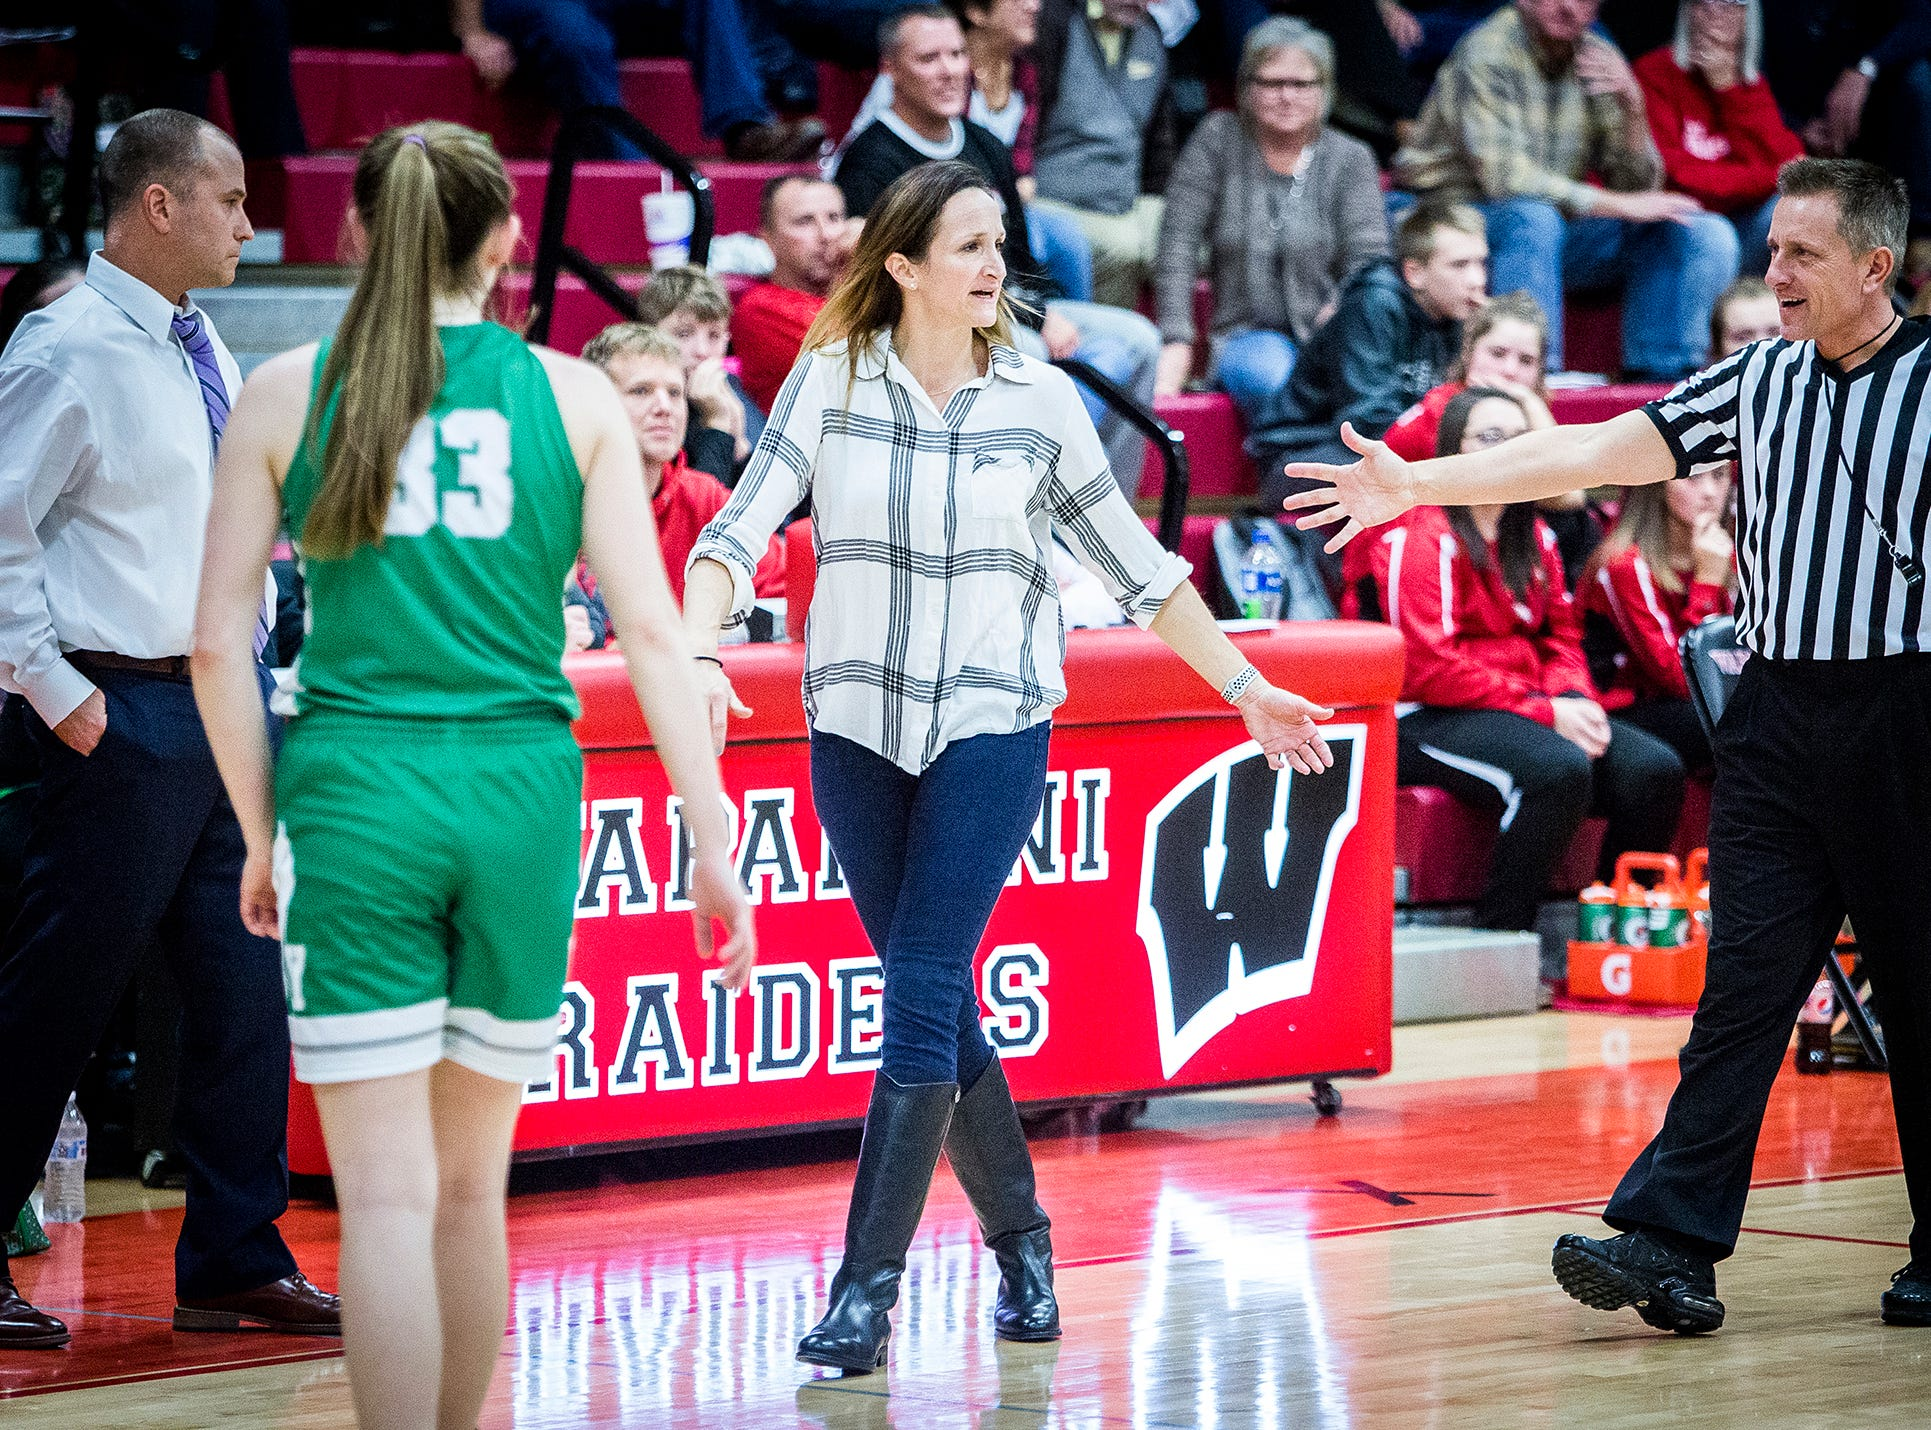 Yorktown coach Joy Matthews talks to the referee during a game at Wapahani High School Tuesday, Dec. 4, 2018.